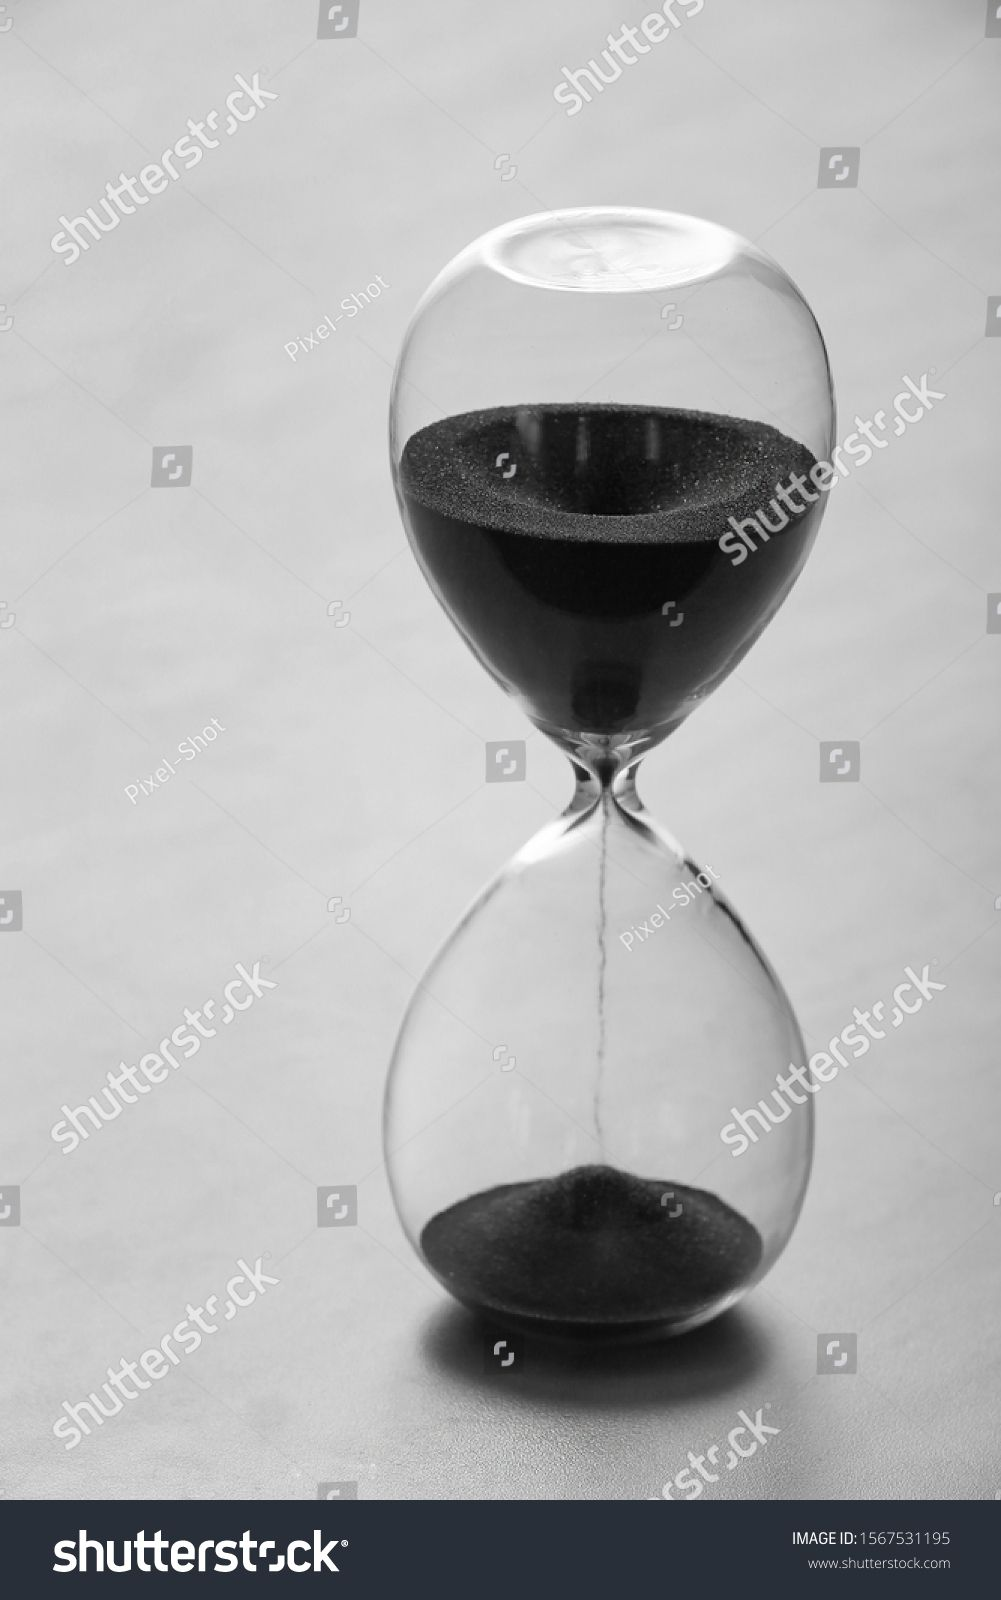 Crystal hourglass on light background